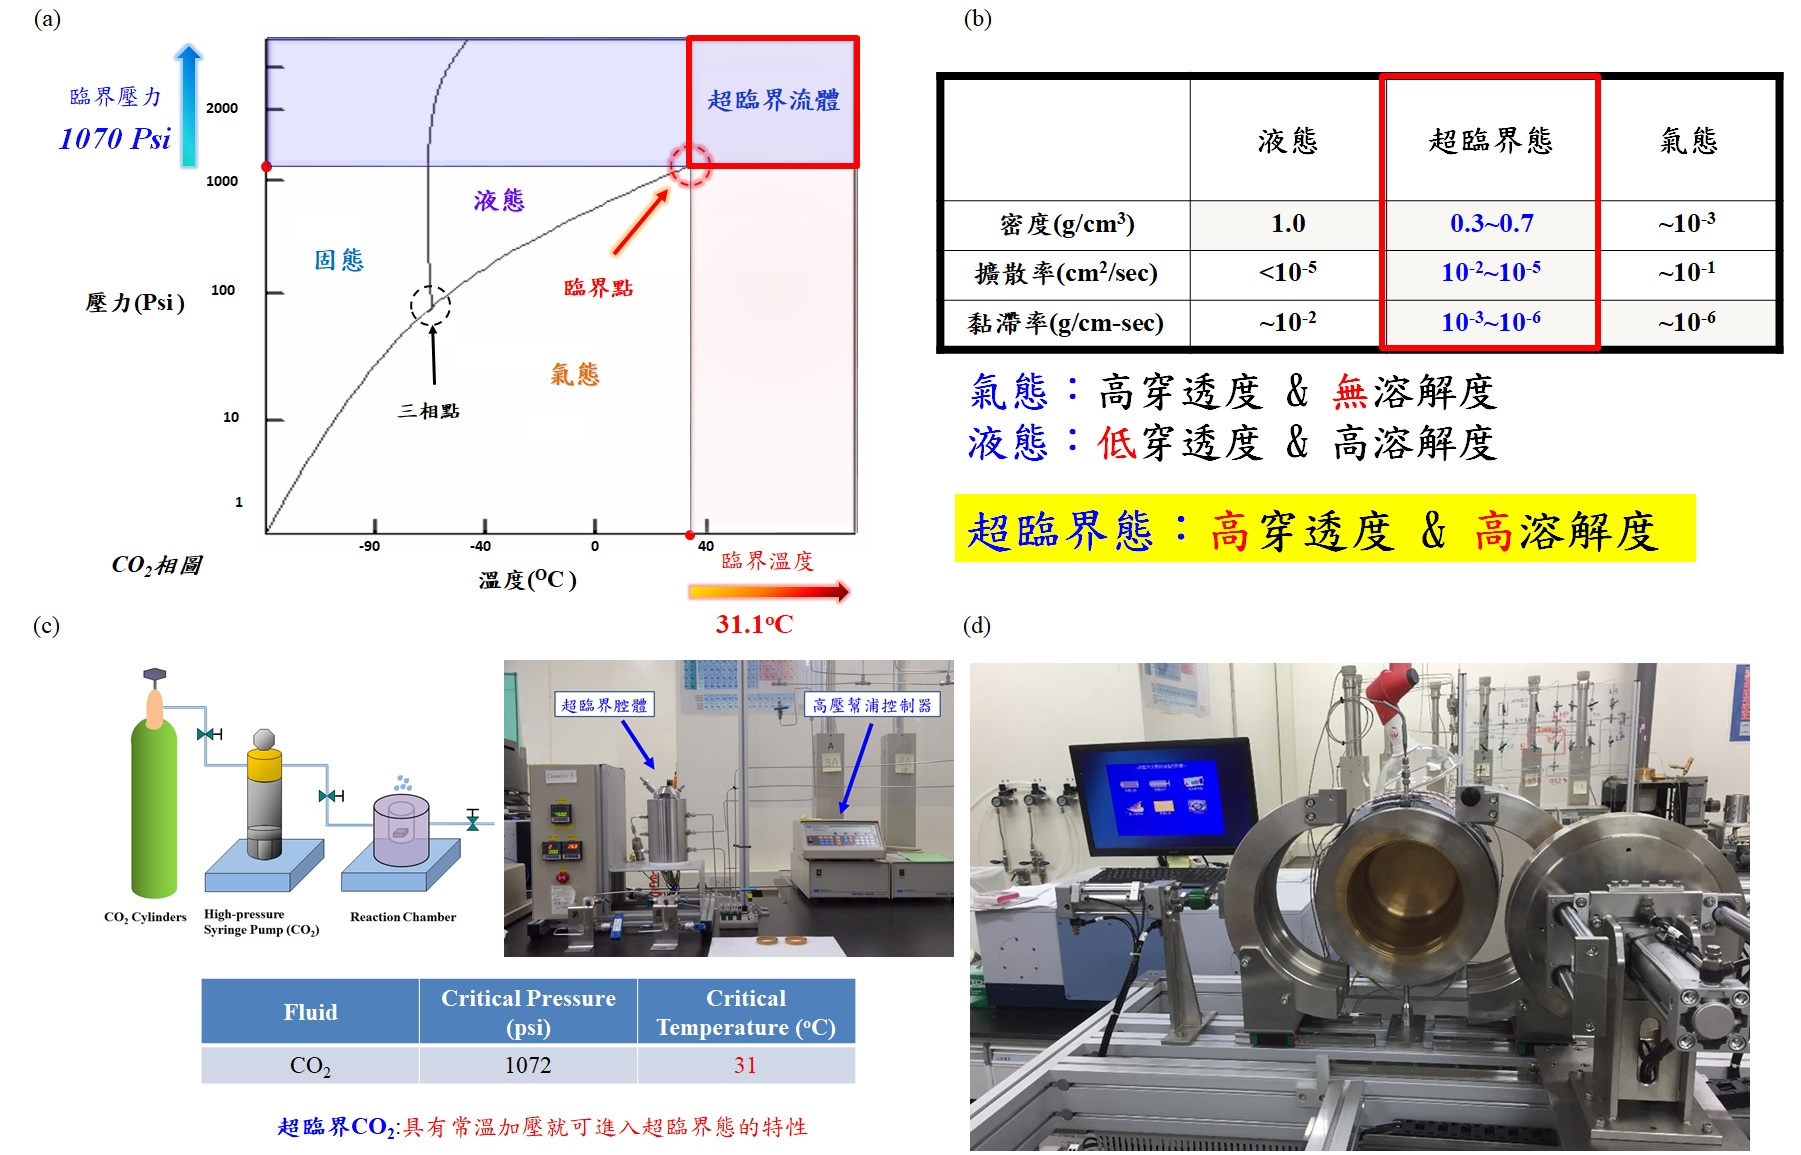 Low Temperature Supercritical Fluid Treatment Technique with Electronic Devices